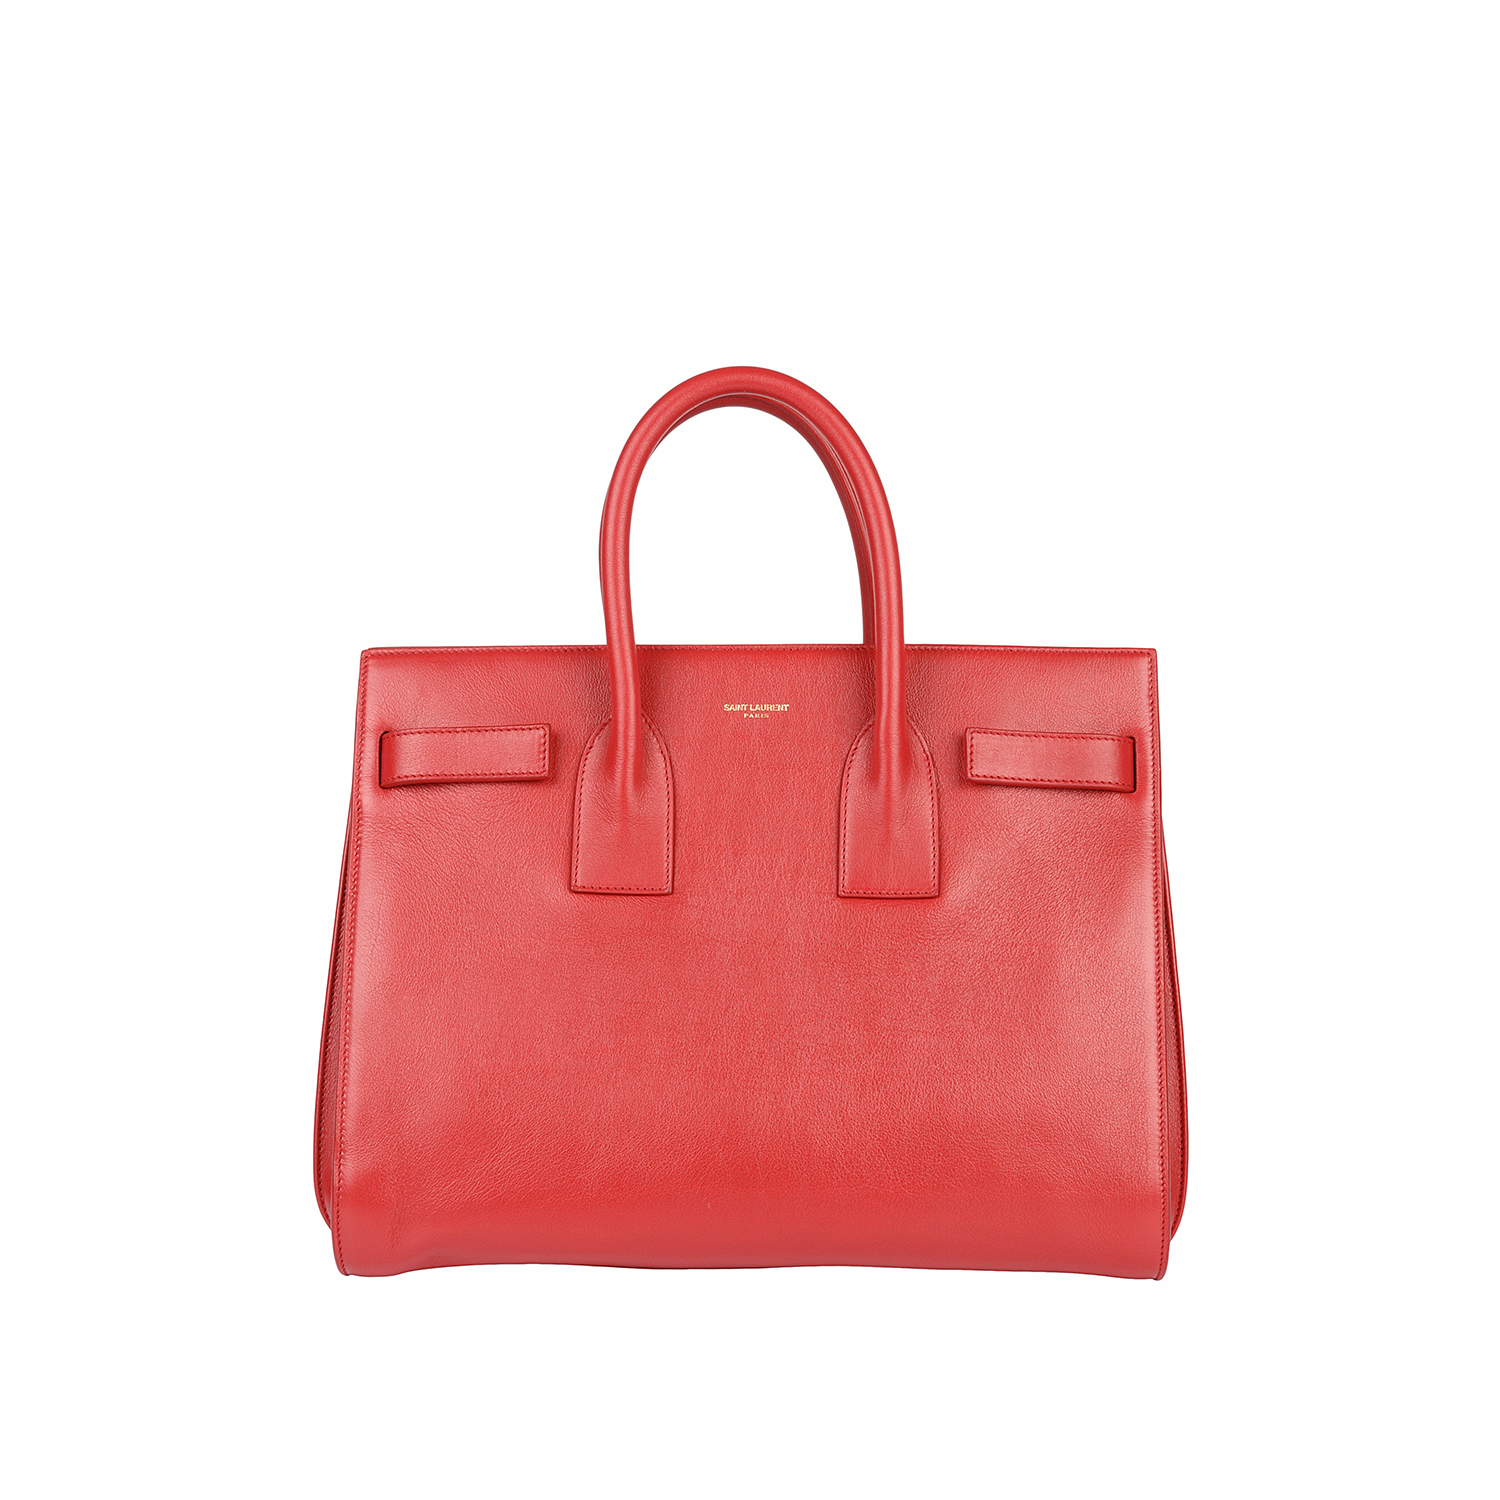 Borsa in Affitto Yves Saint Laurent - su Rent Fashion Bag